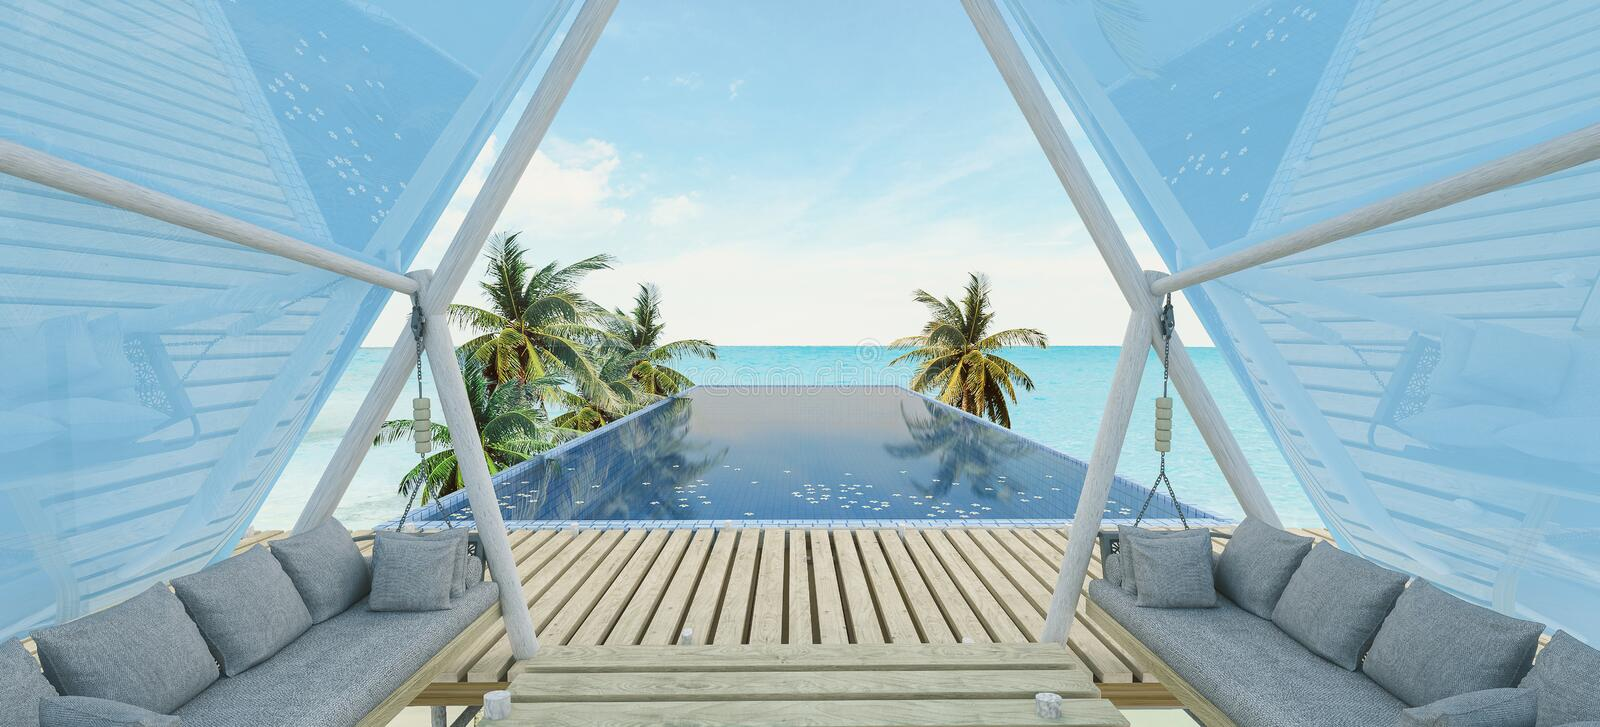 Sea view swimming pool royalty free stock images